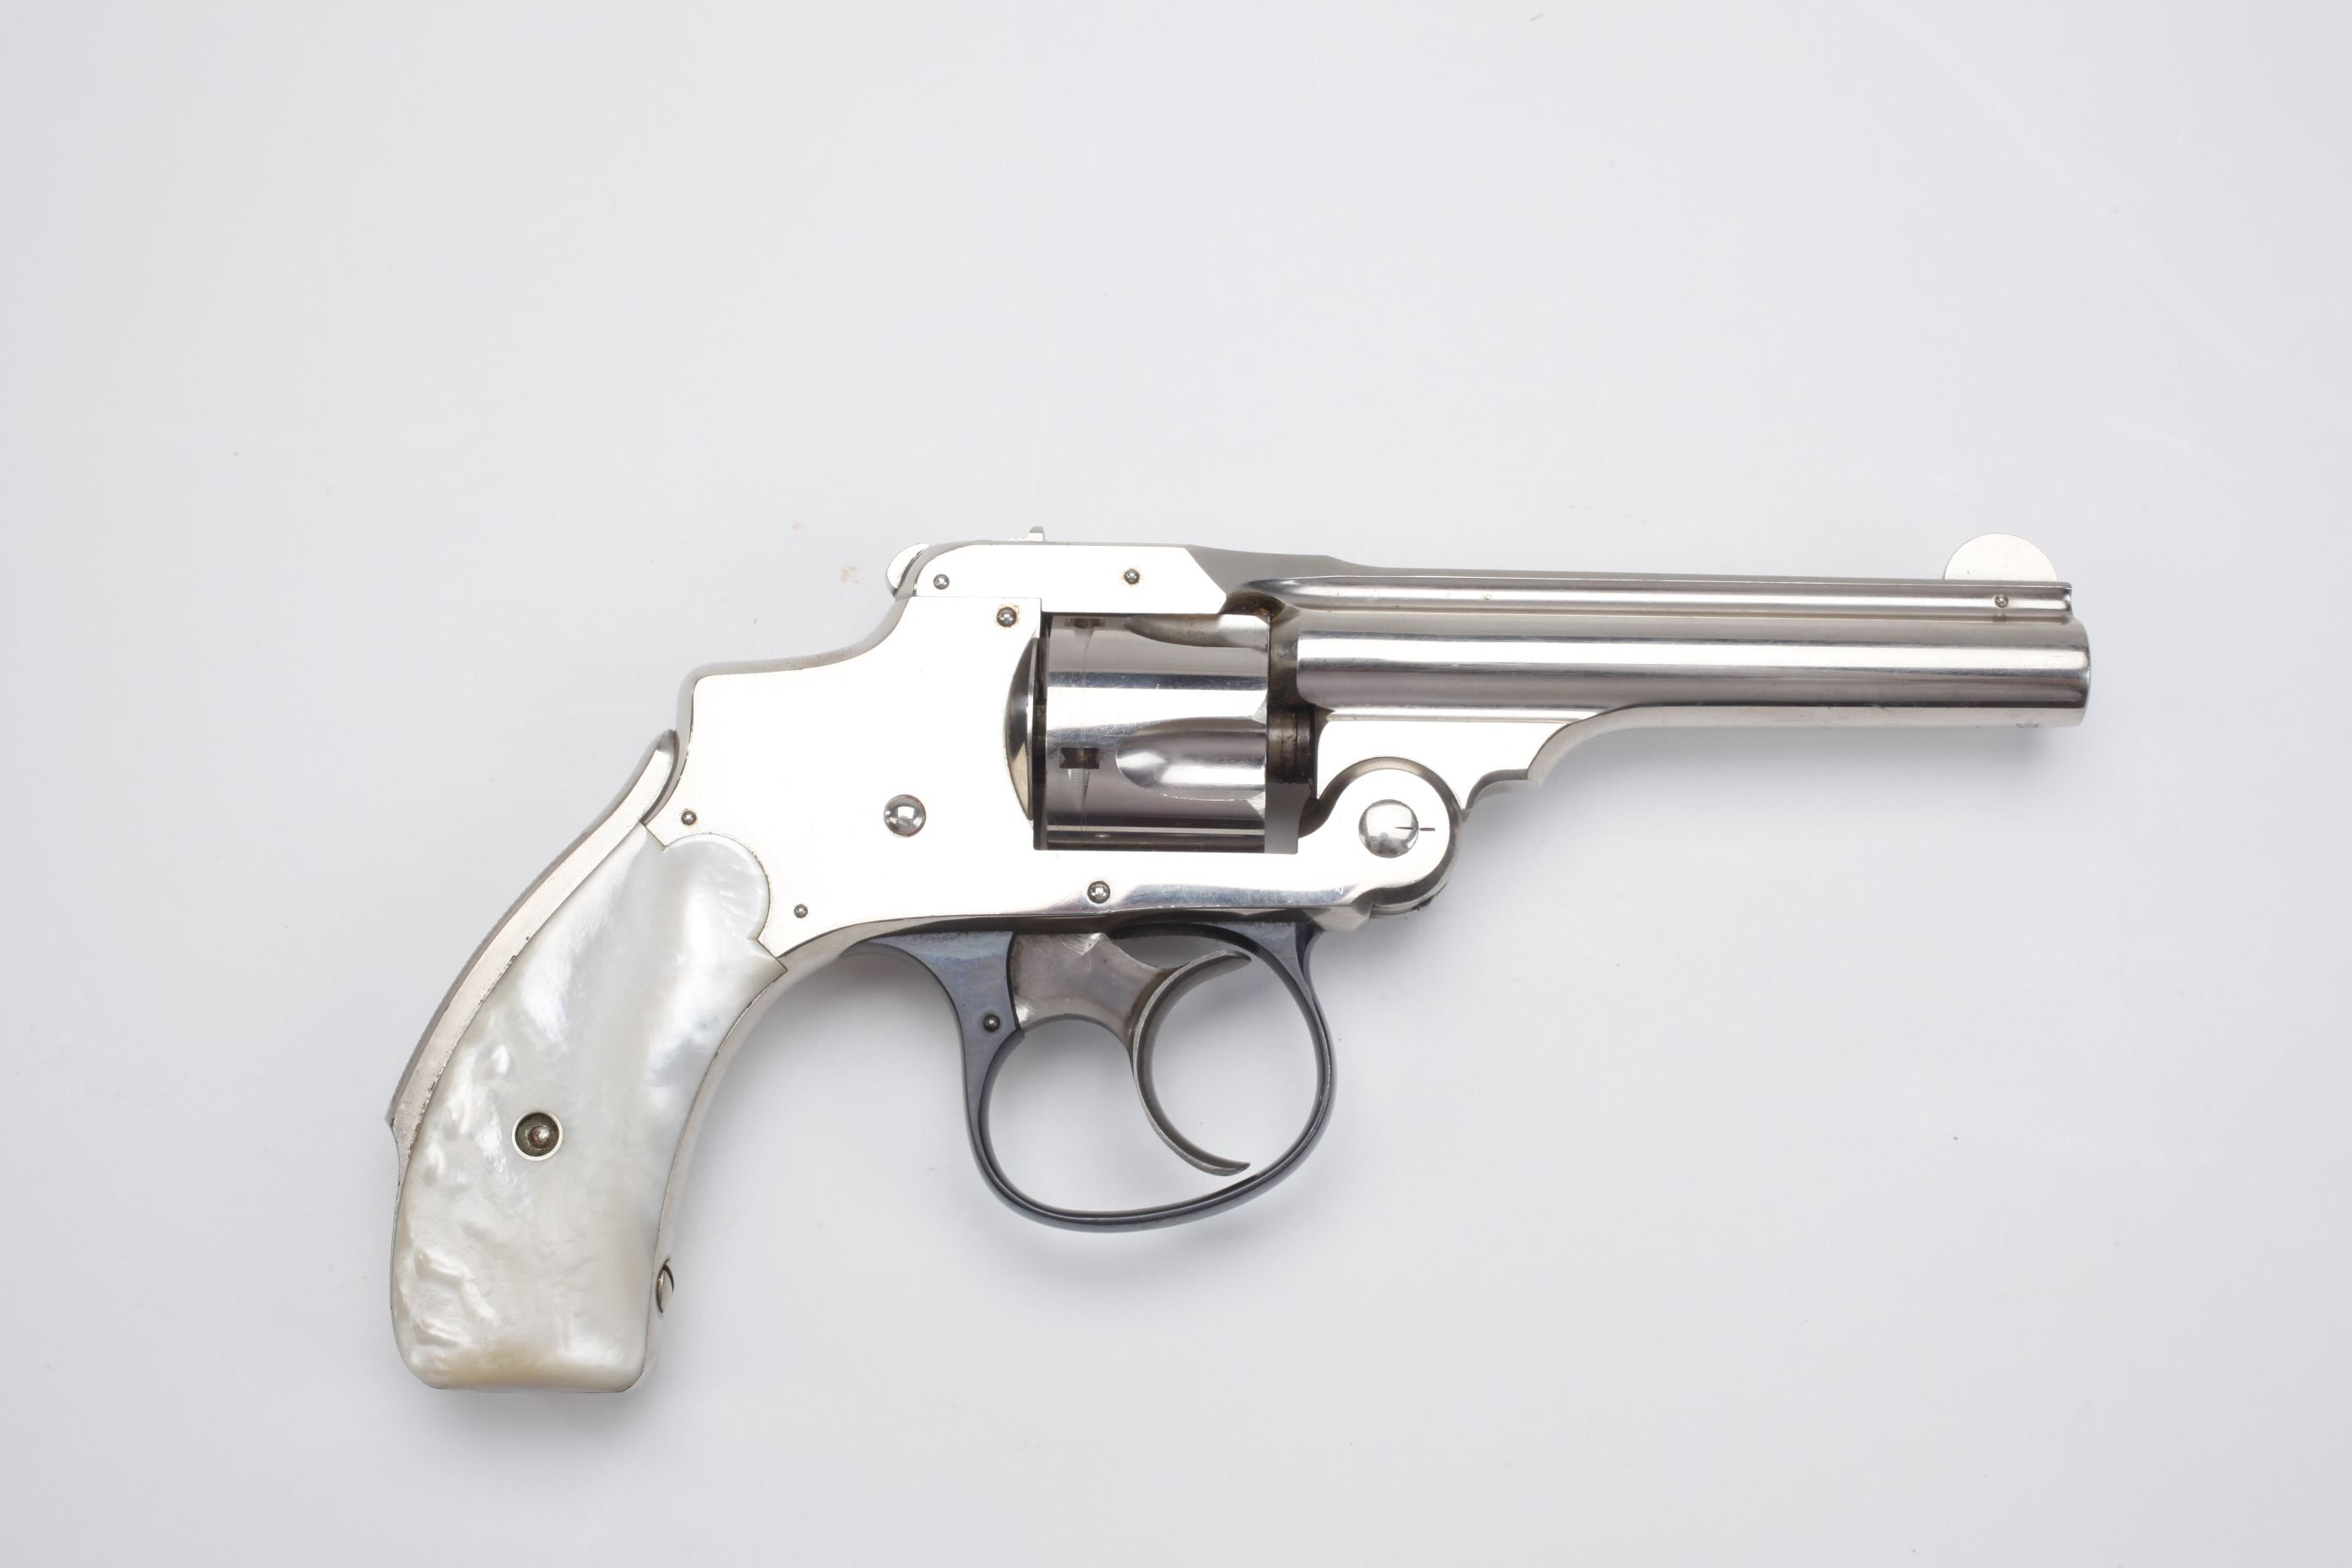 Smith & Wesson 32 Safety First Model revolver